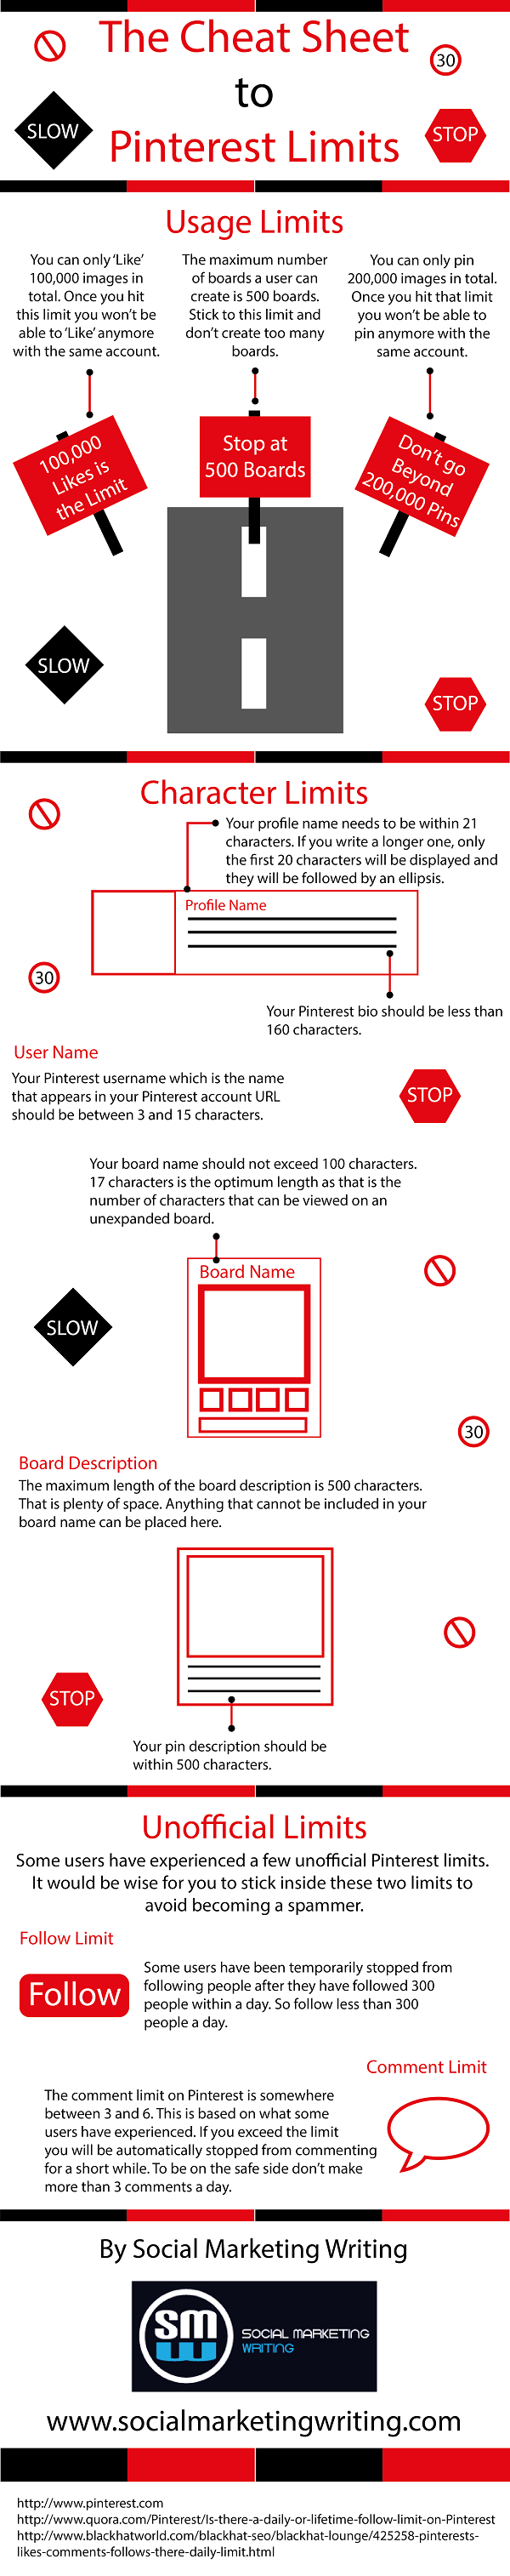 The Cheat Sheet to Pinterest Limits [Infographic]